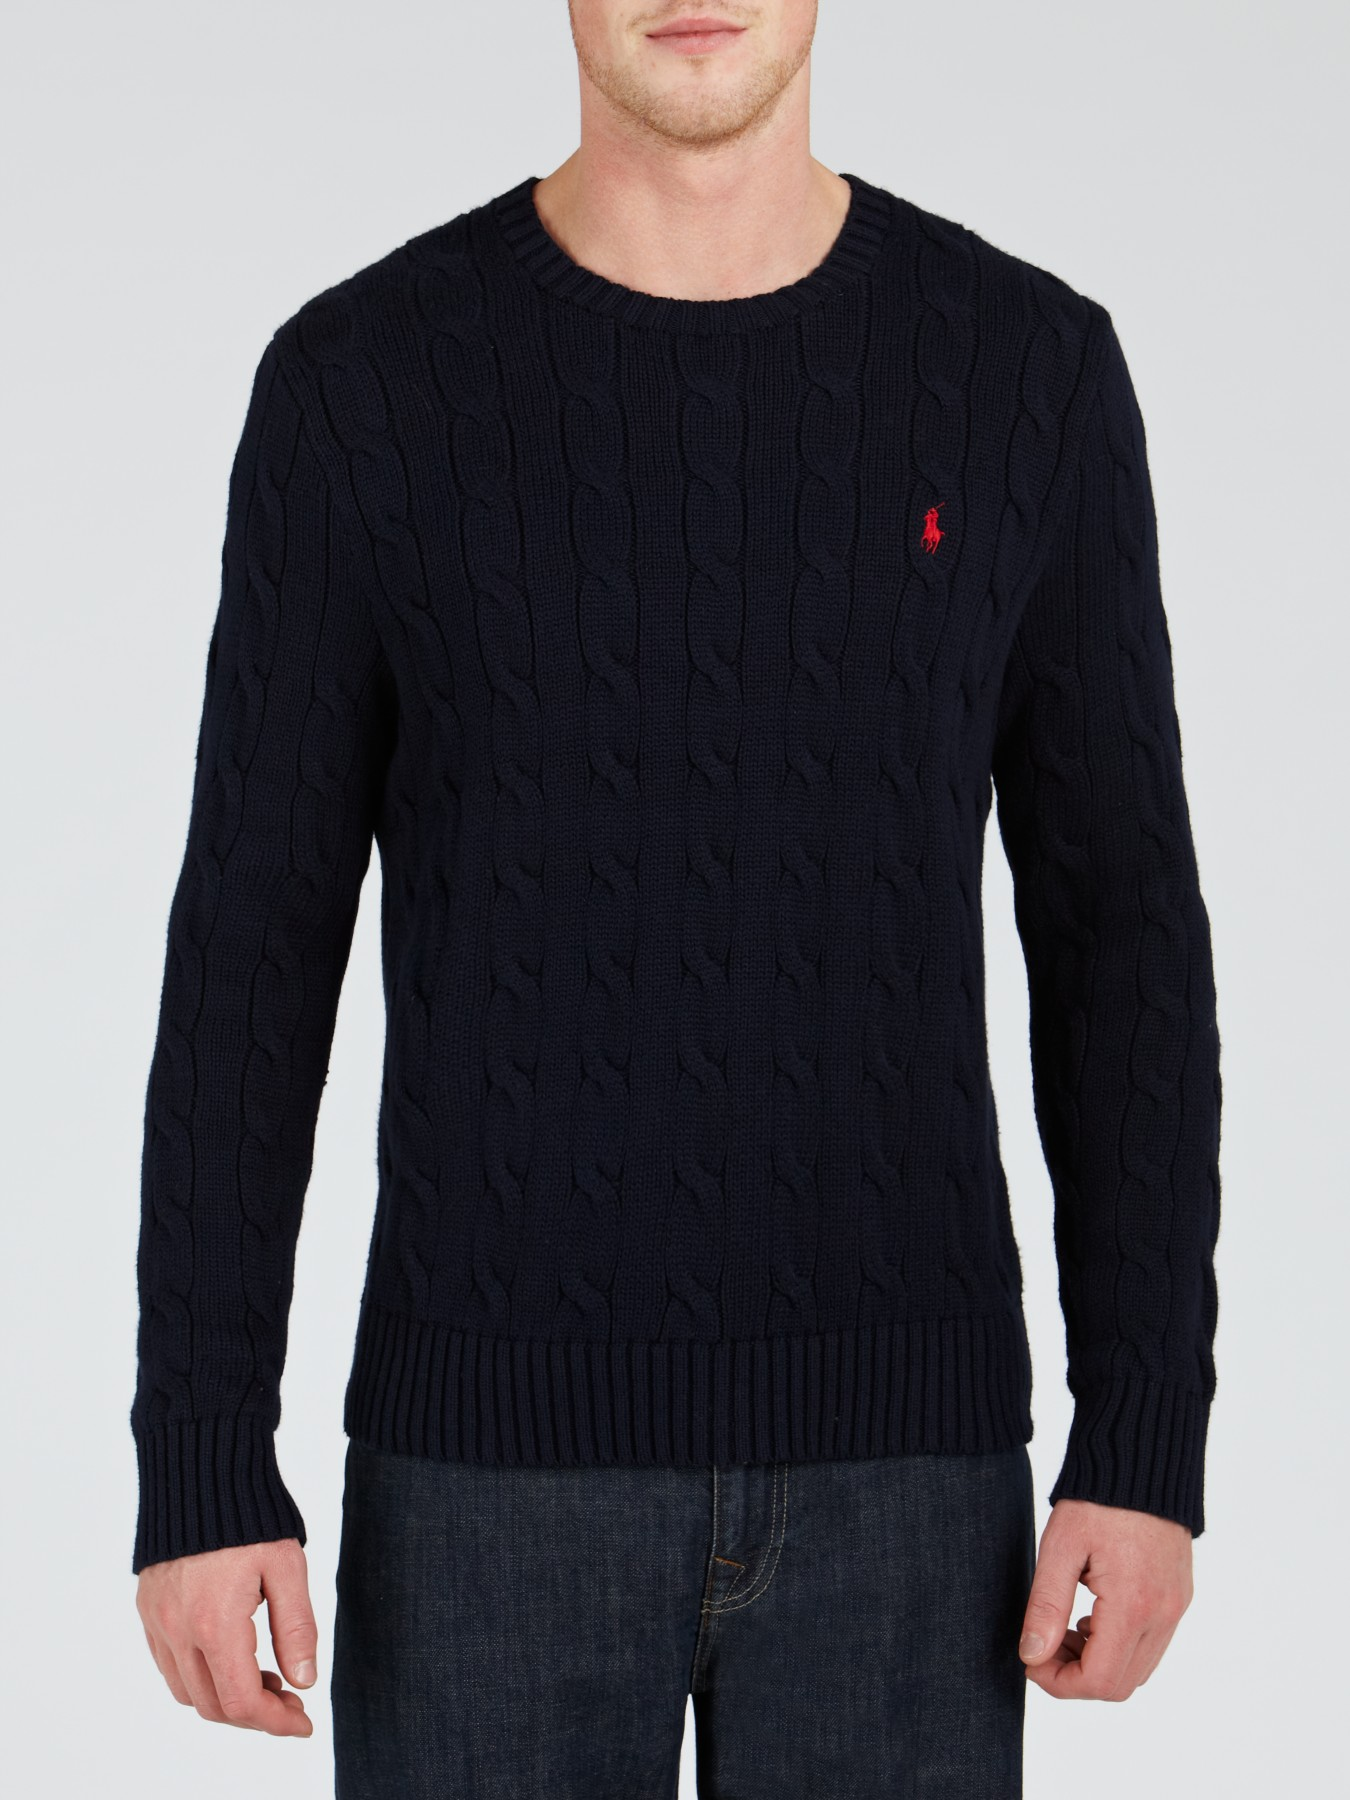 1d9db190c4f1 Polo Ralph Lauren Cotton Cable Knit Jumper in Blue for Men - Lyst